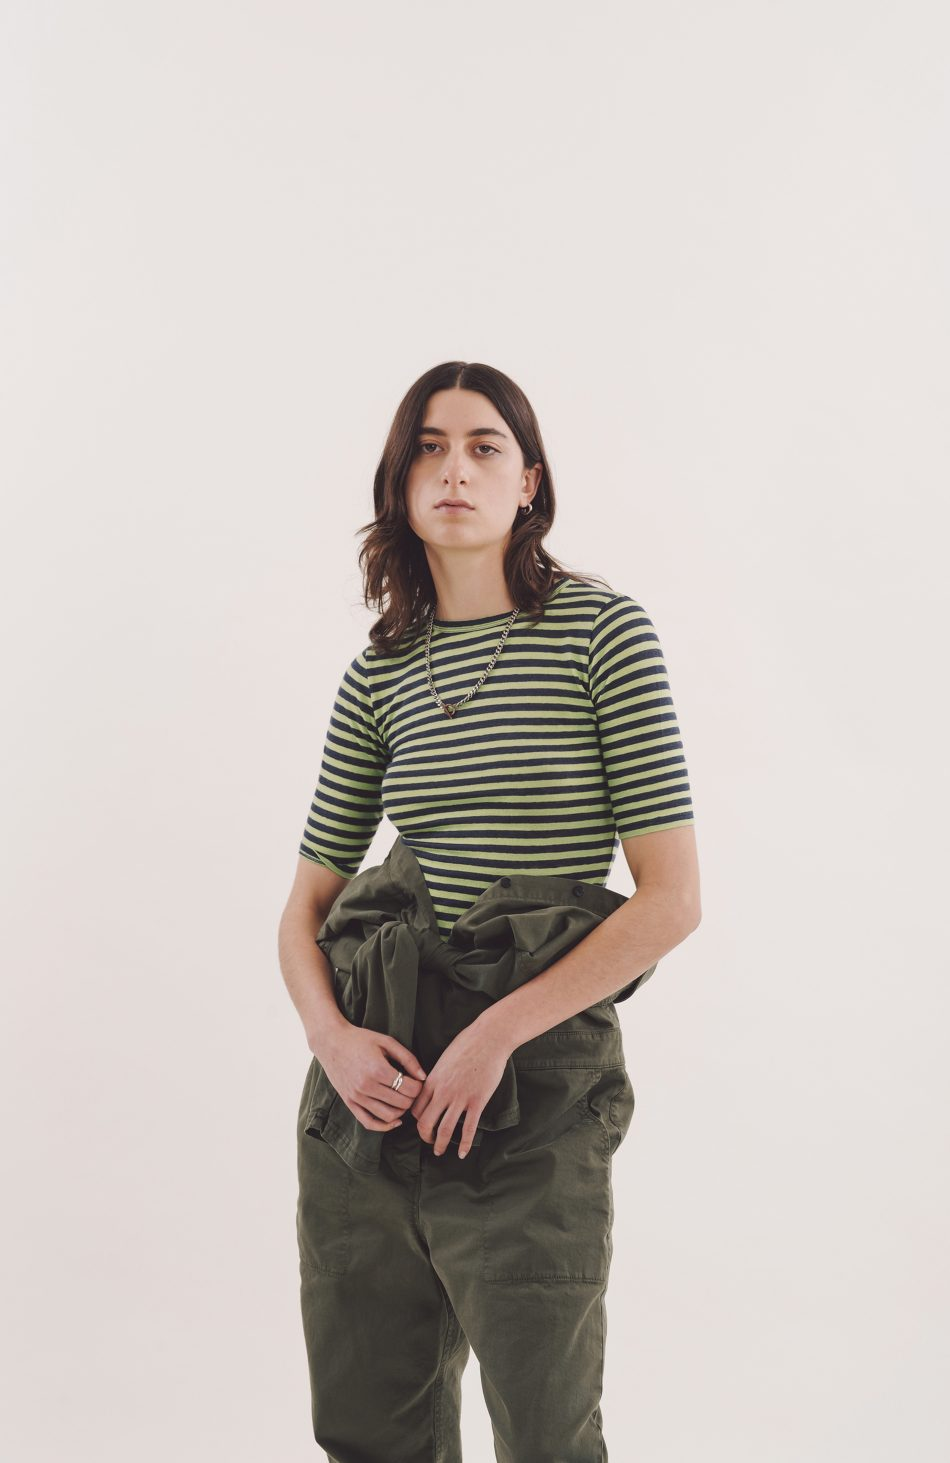 Charlotte Short-Sleeved Tee in Light Green and Navy Stripe